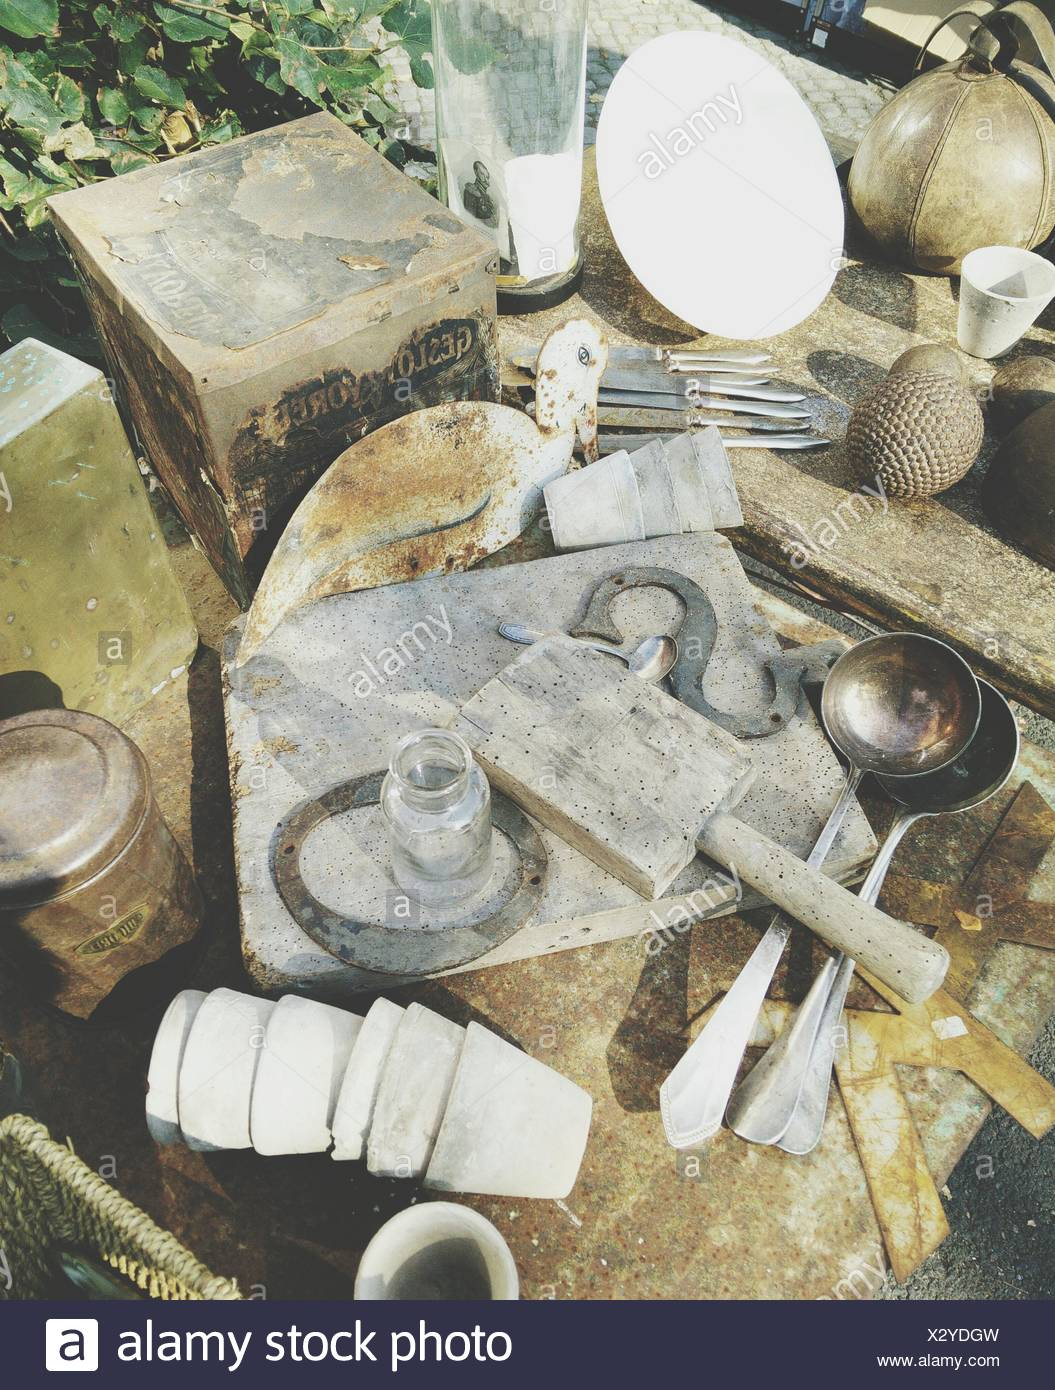 Close-Up Of Old Kitchen Utensils - Stock Image